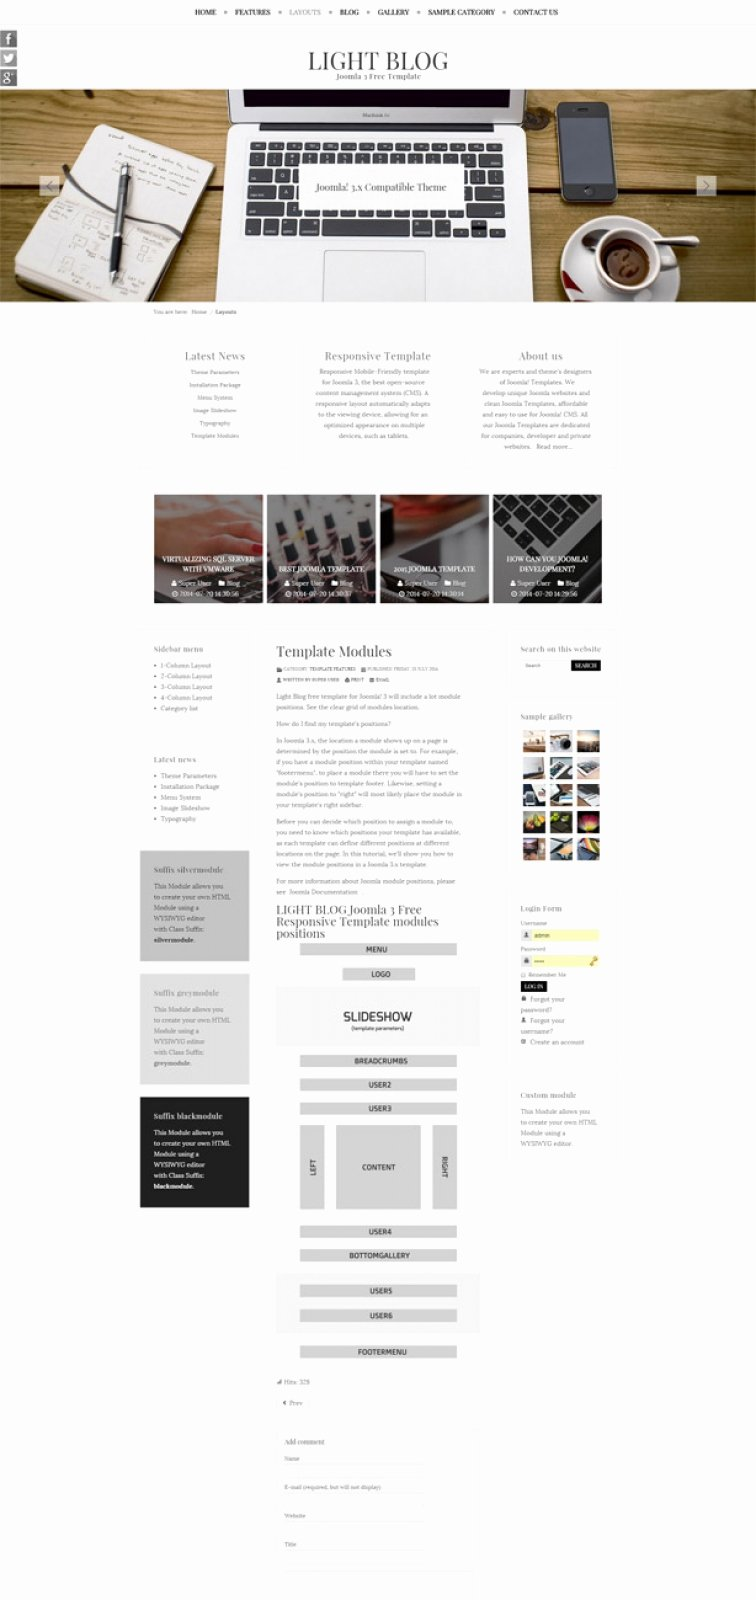 Bootstrap Blog Template Free New Light Blog Free Joomla 3 Responsive Bootstrap Template